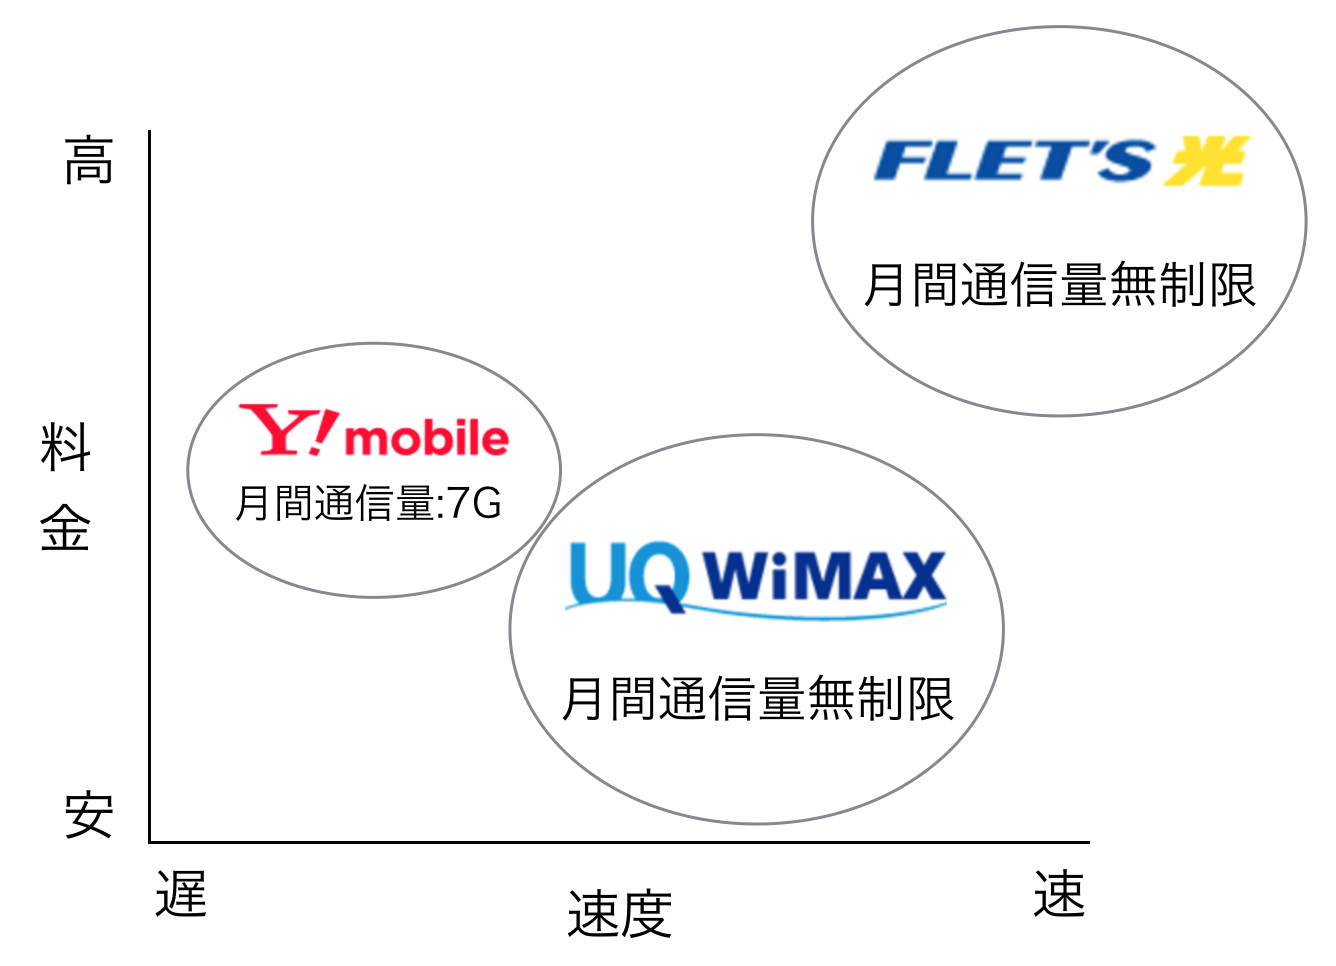 WiMAXギガ放題 他通信サービス比較